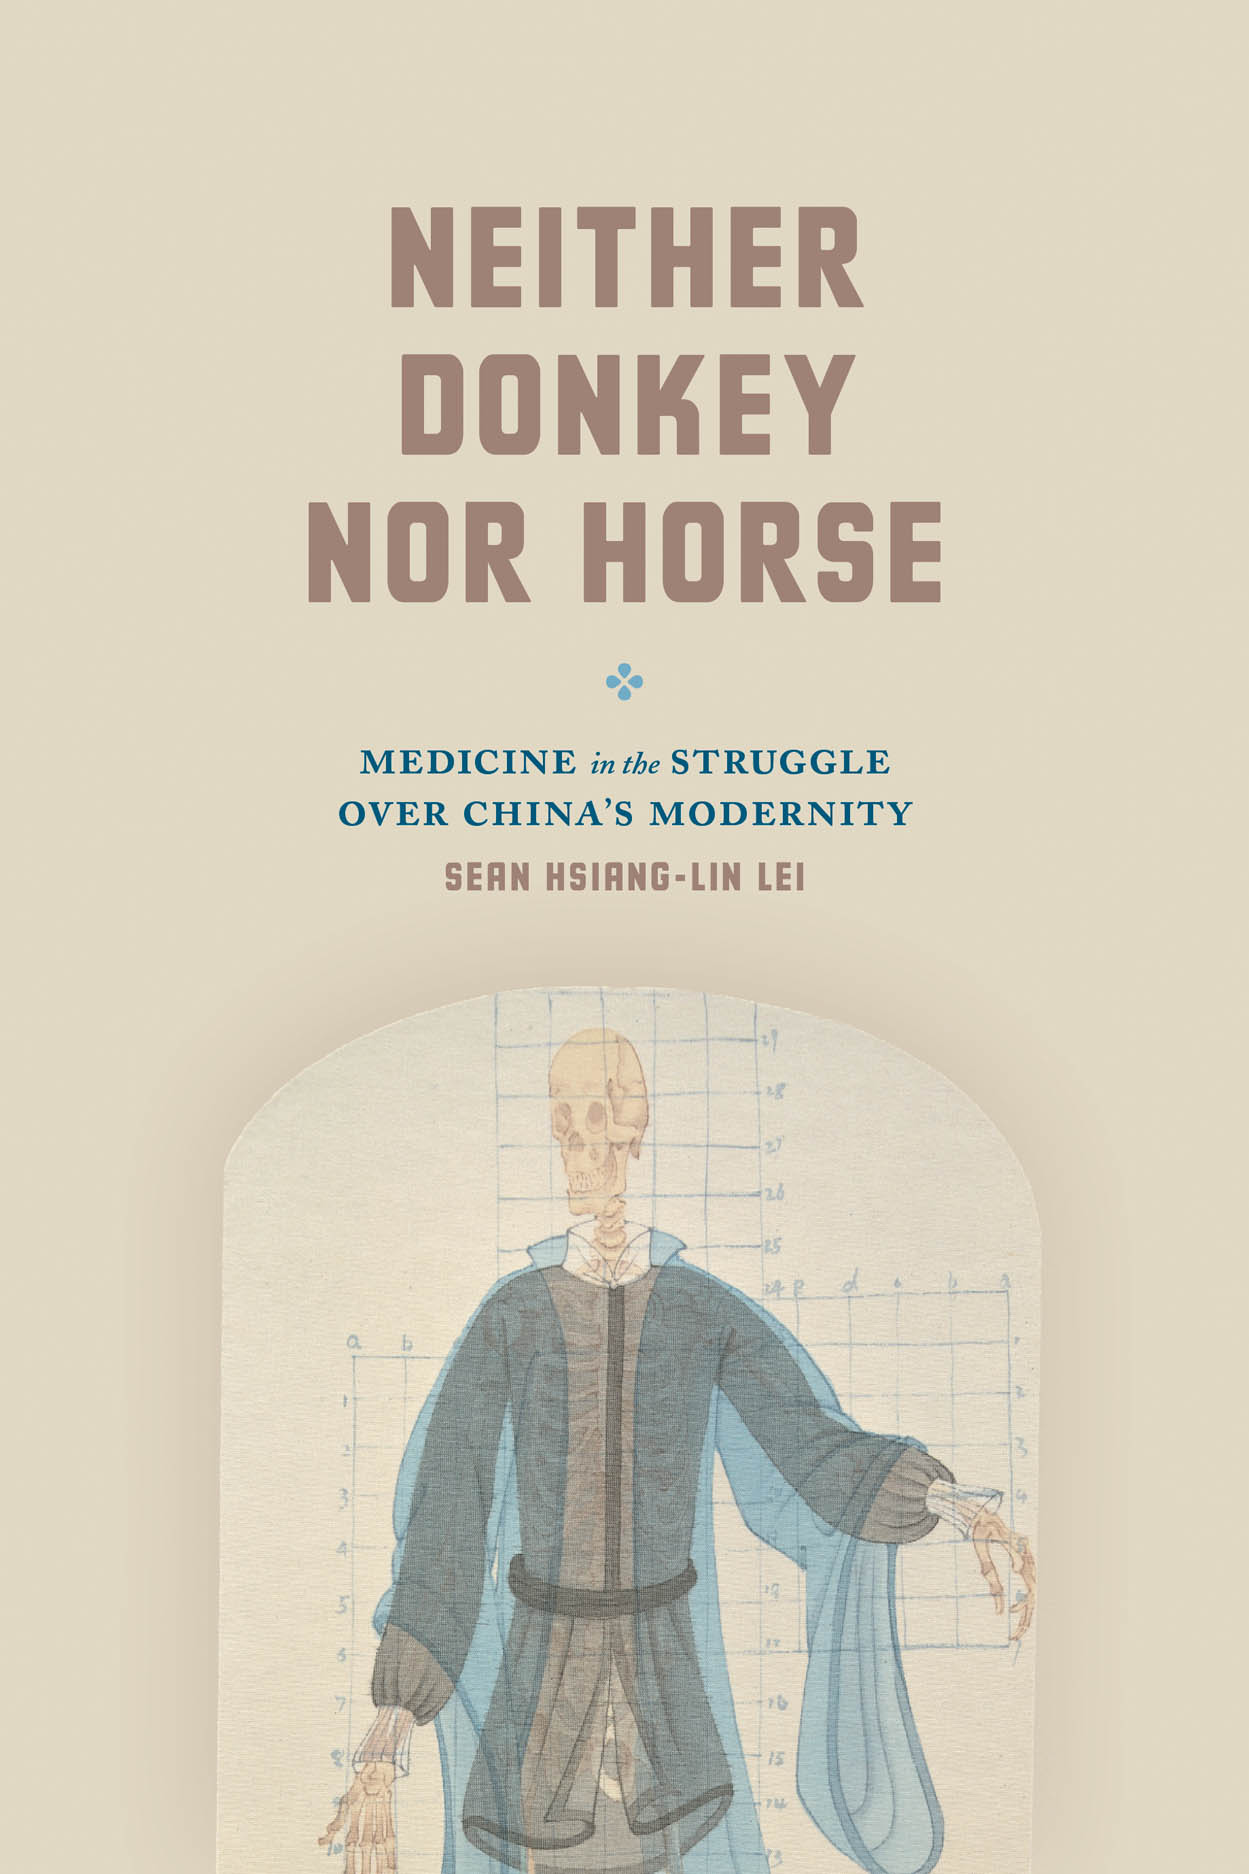 Neither Donkey nor Horse